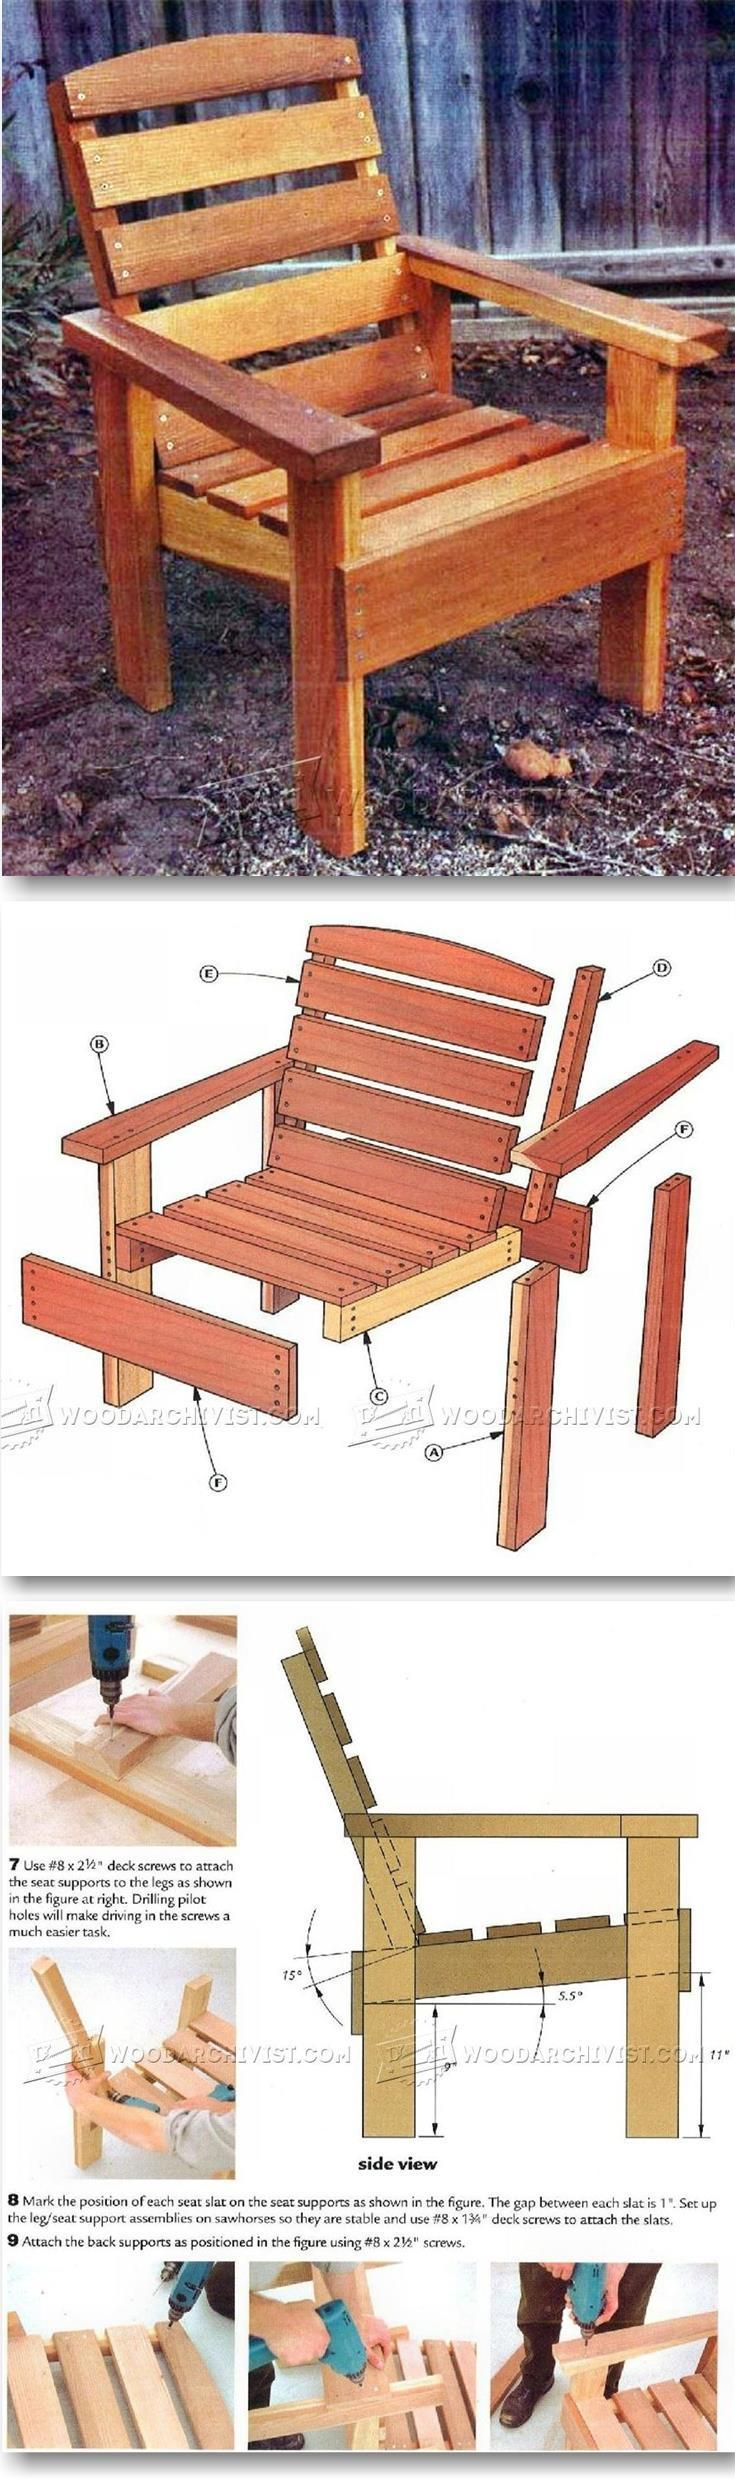 deck chair plans outdoor furniture plans projects